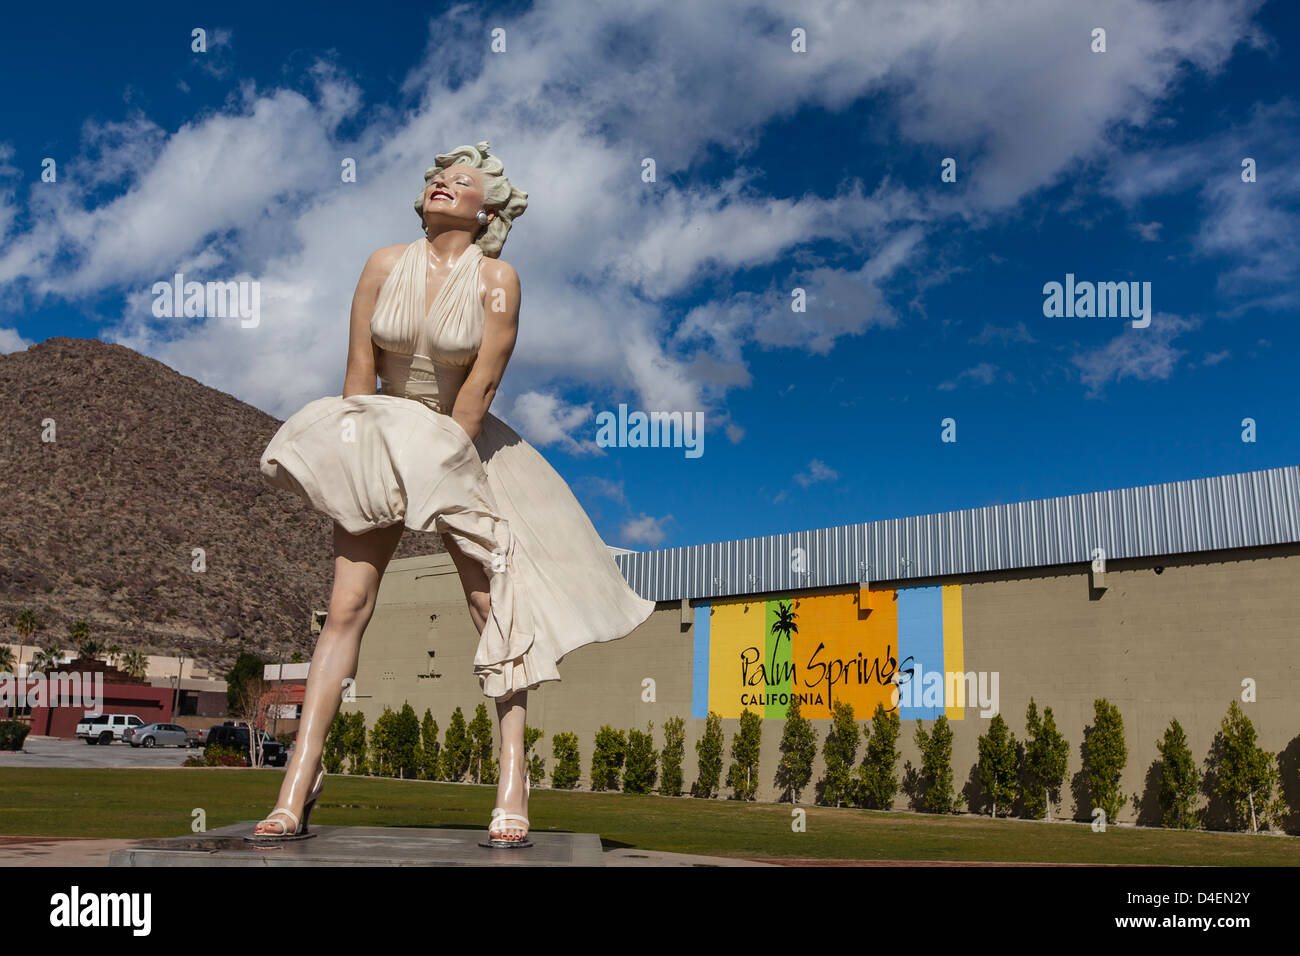 26 pieds de haut statue de Marilyn Monroe par Seward Johnson, héritière de la fortune Johnson & Johnson, Photo Stock